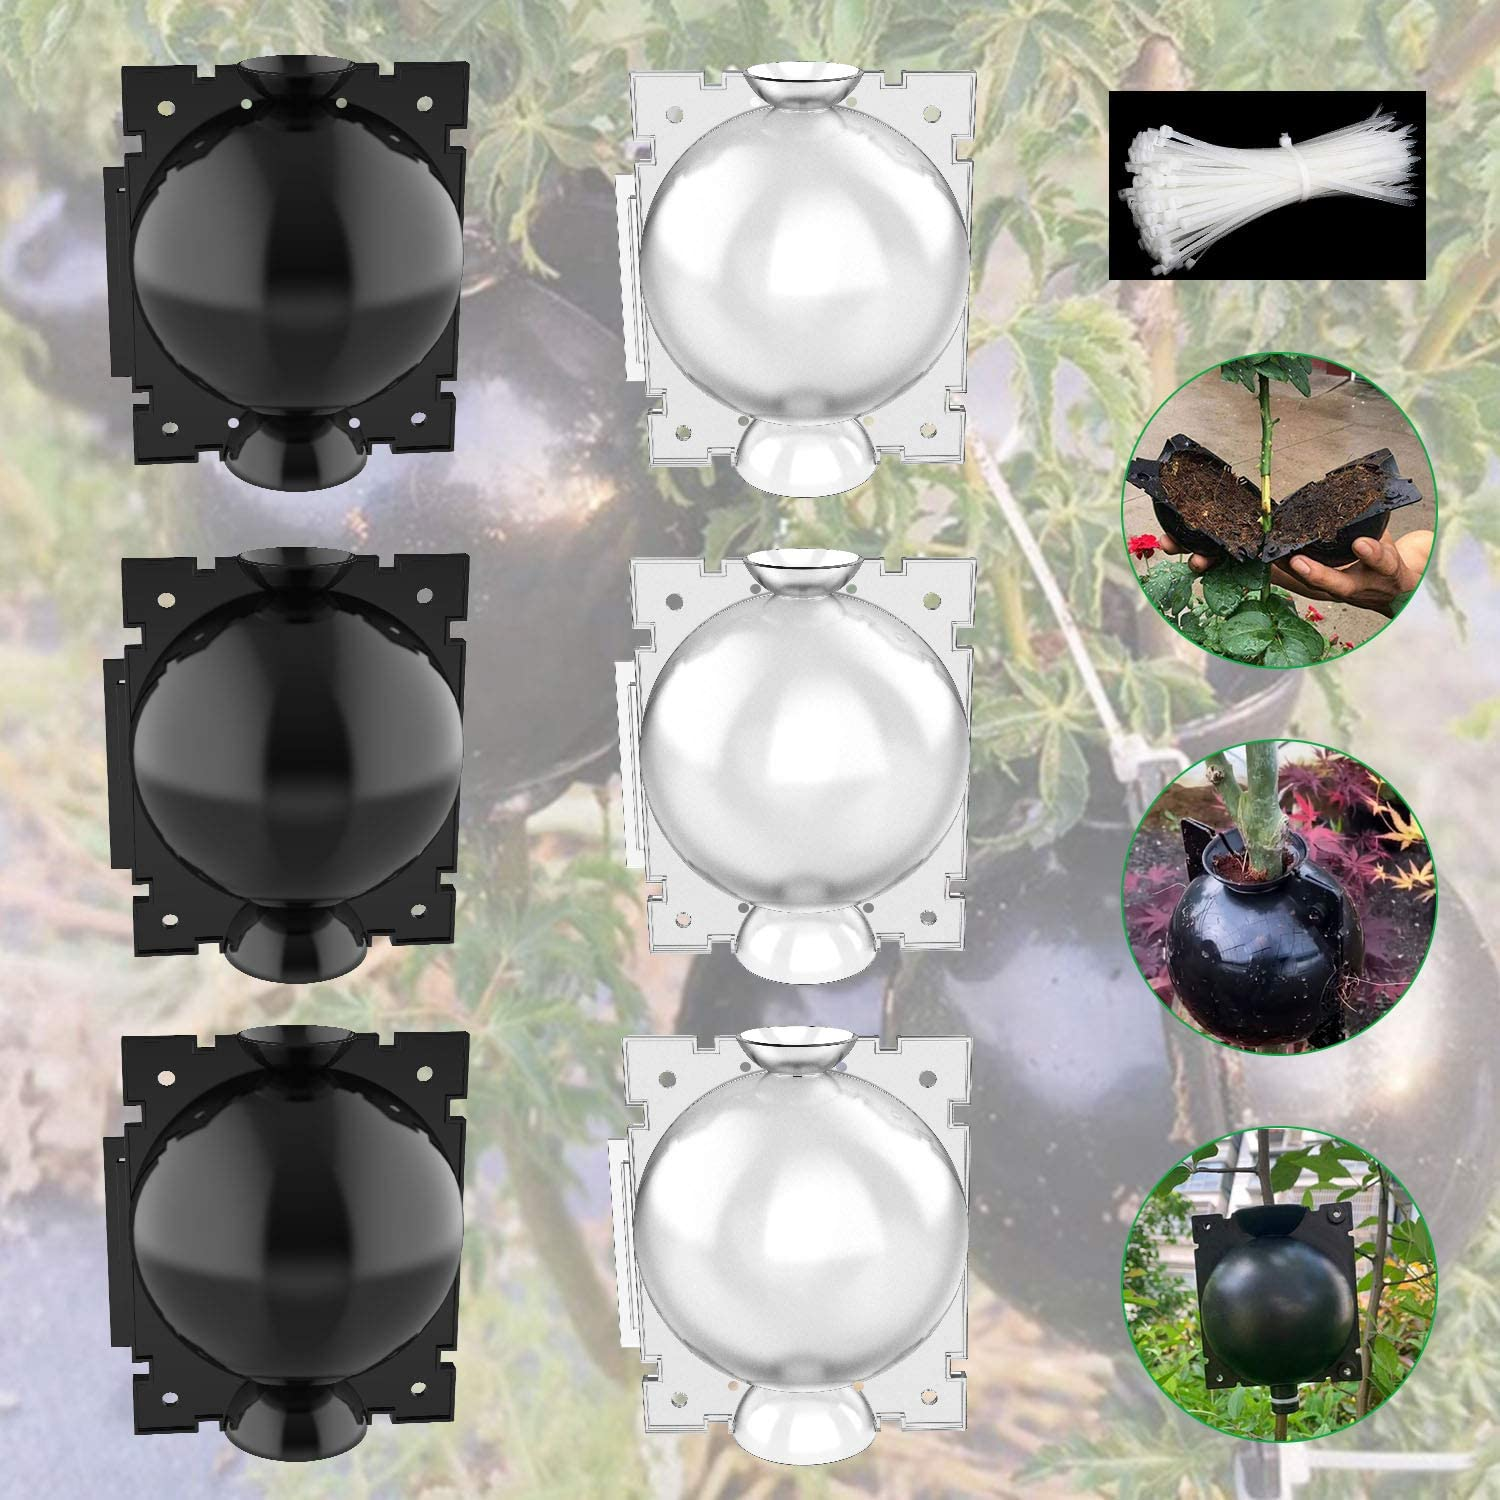 Deyard Plant Root Growing Box, Rooting, Cutting Rooting Device, High-Pressure Plant Air Layering Pods Propagation Ball, Plant Grafting Box (3 Black + 3 Clear)